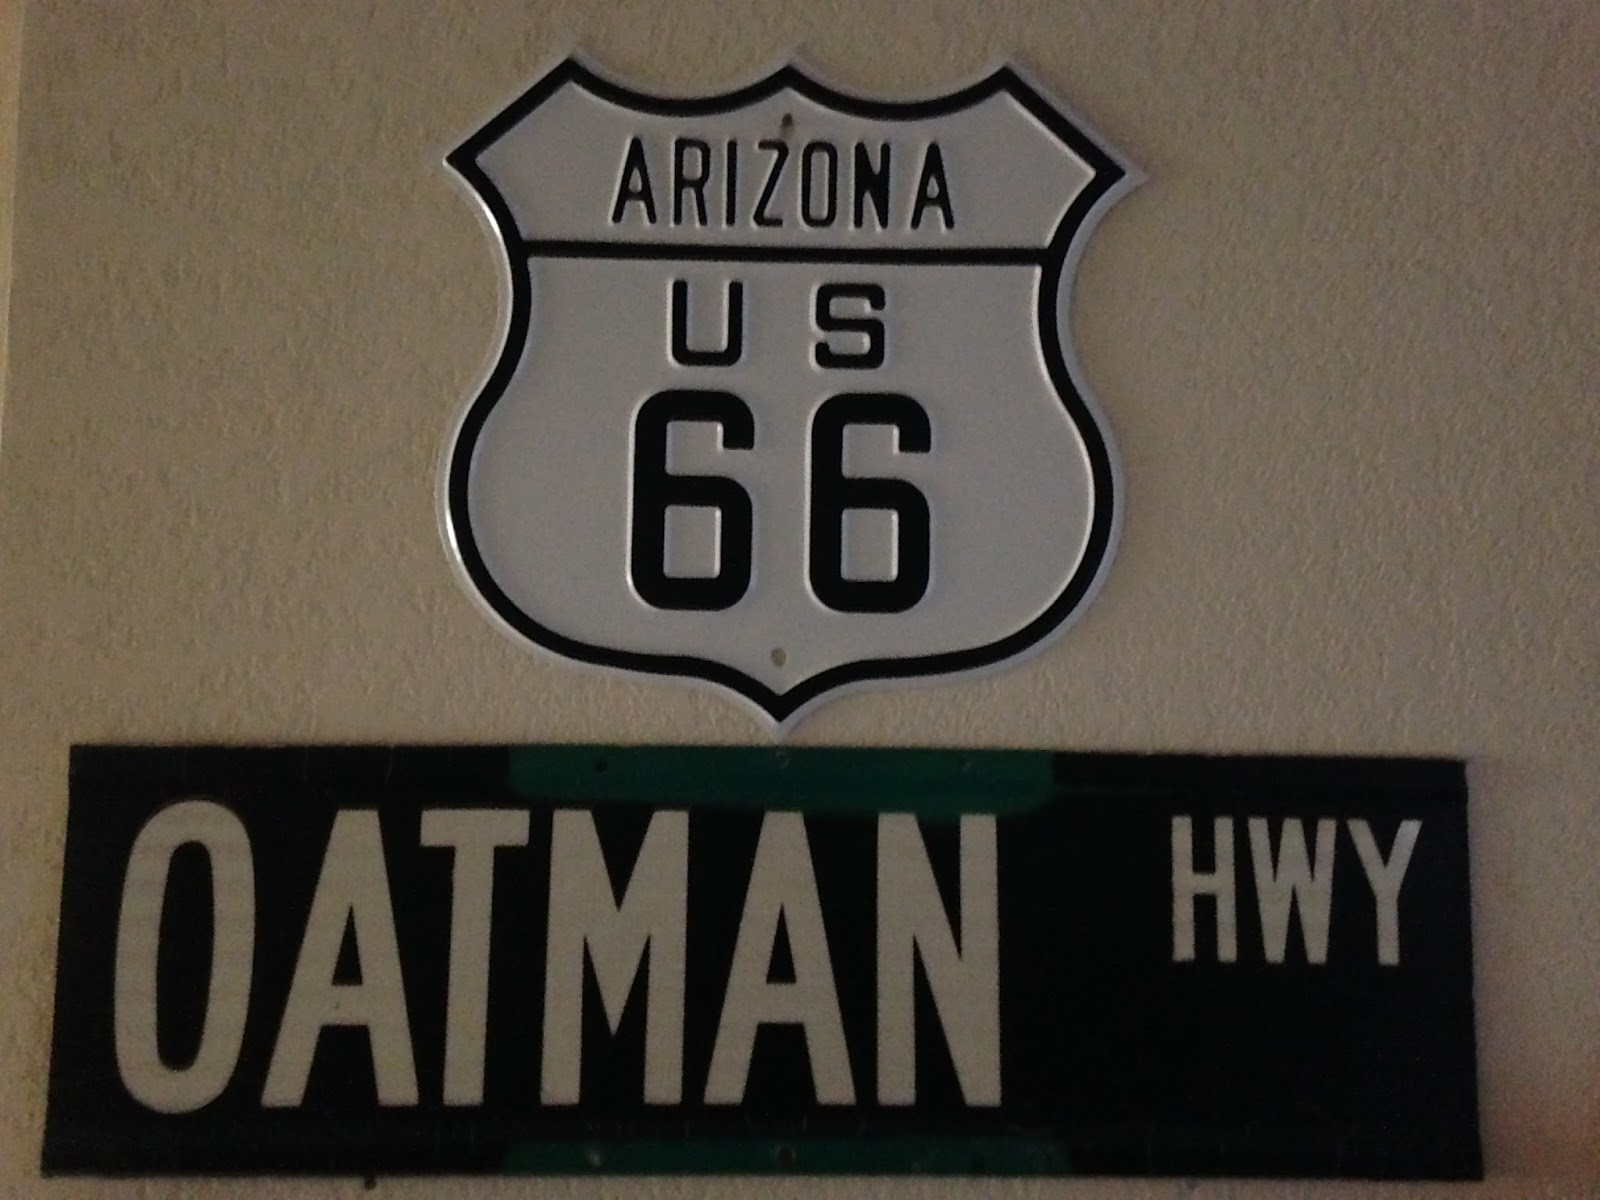 i used to visit oatman frequently there are a ton of us route 66 shields to be seen all over town the oatman hotel actually dates back to 1902 and